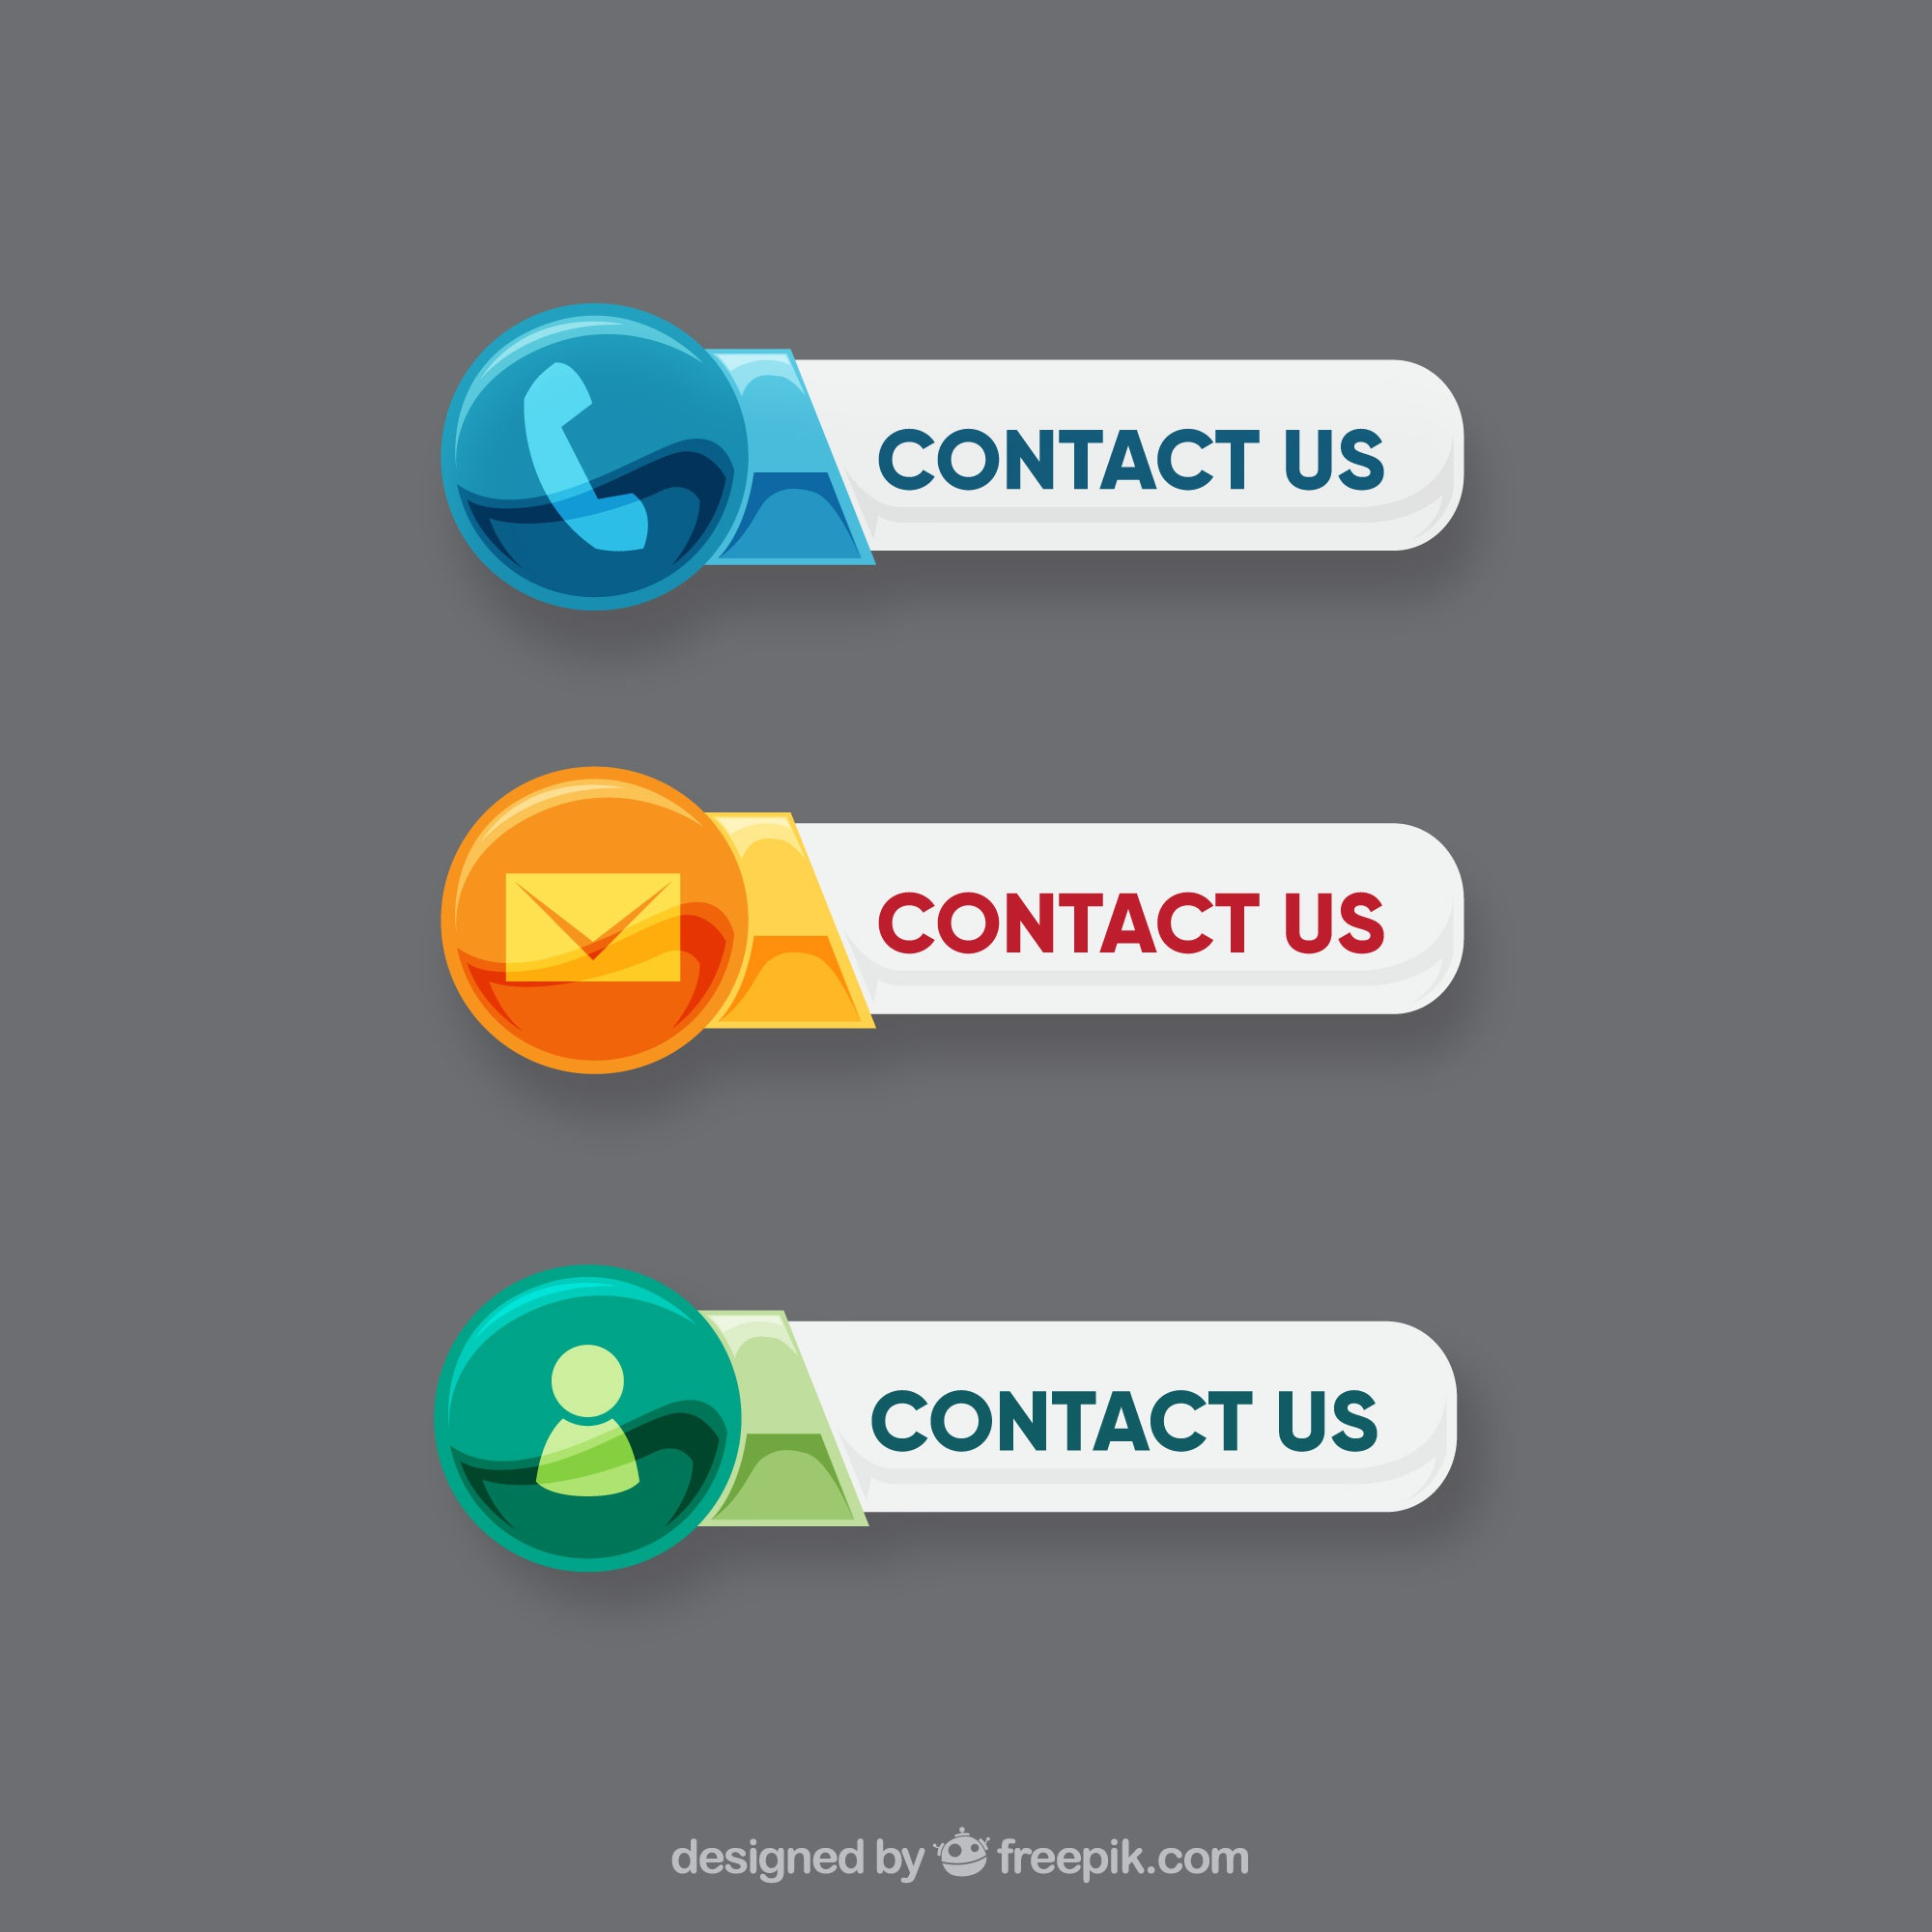 Contact buttons with different icons